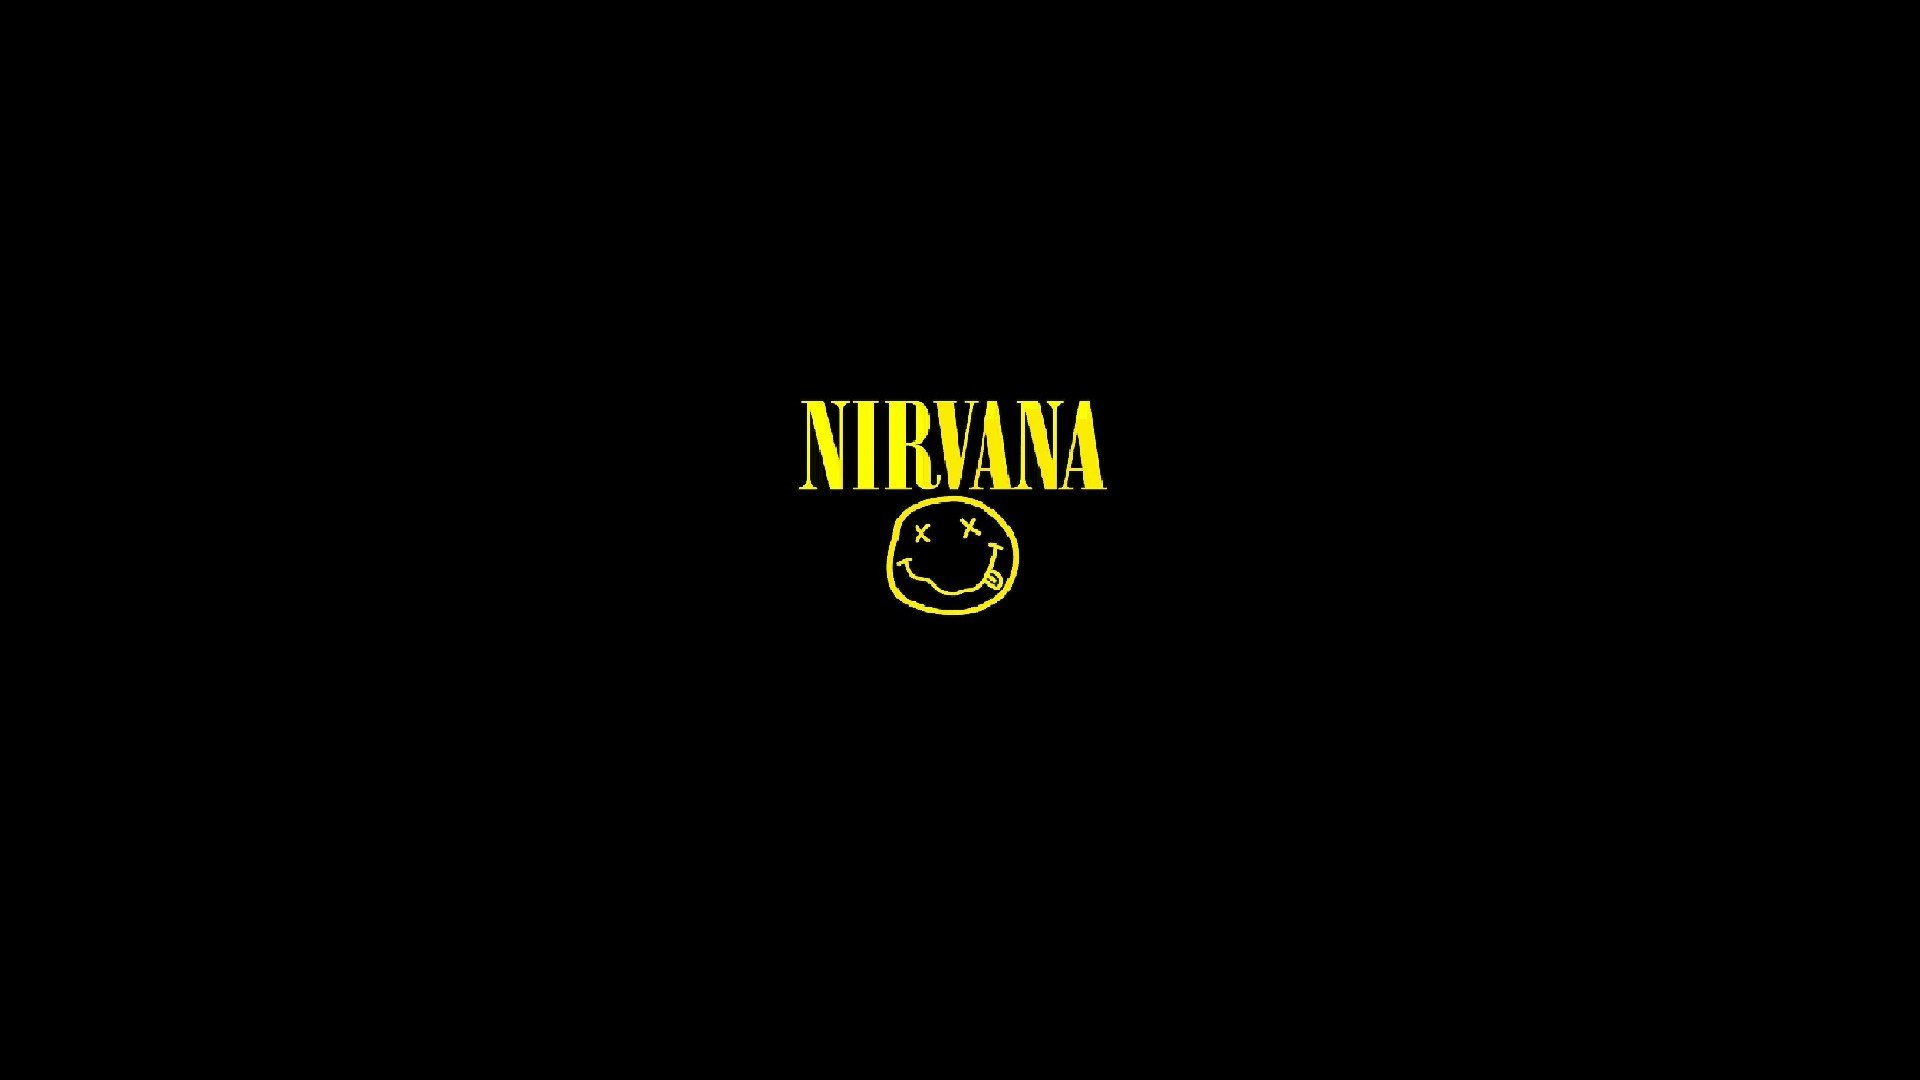 47 Nirvana Iphone Wallpaper On Wallpapersafari